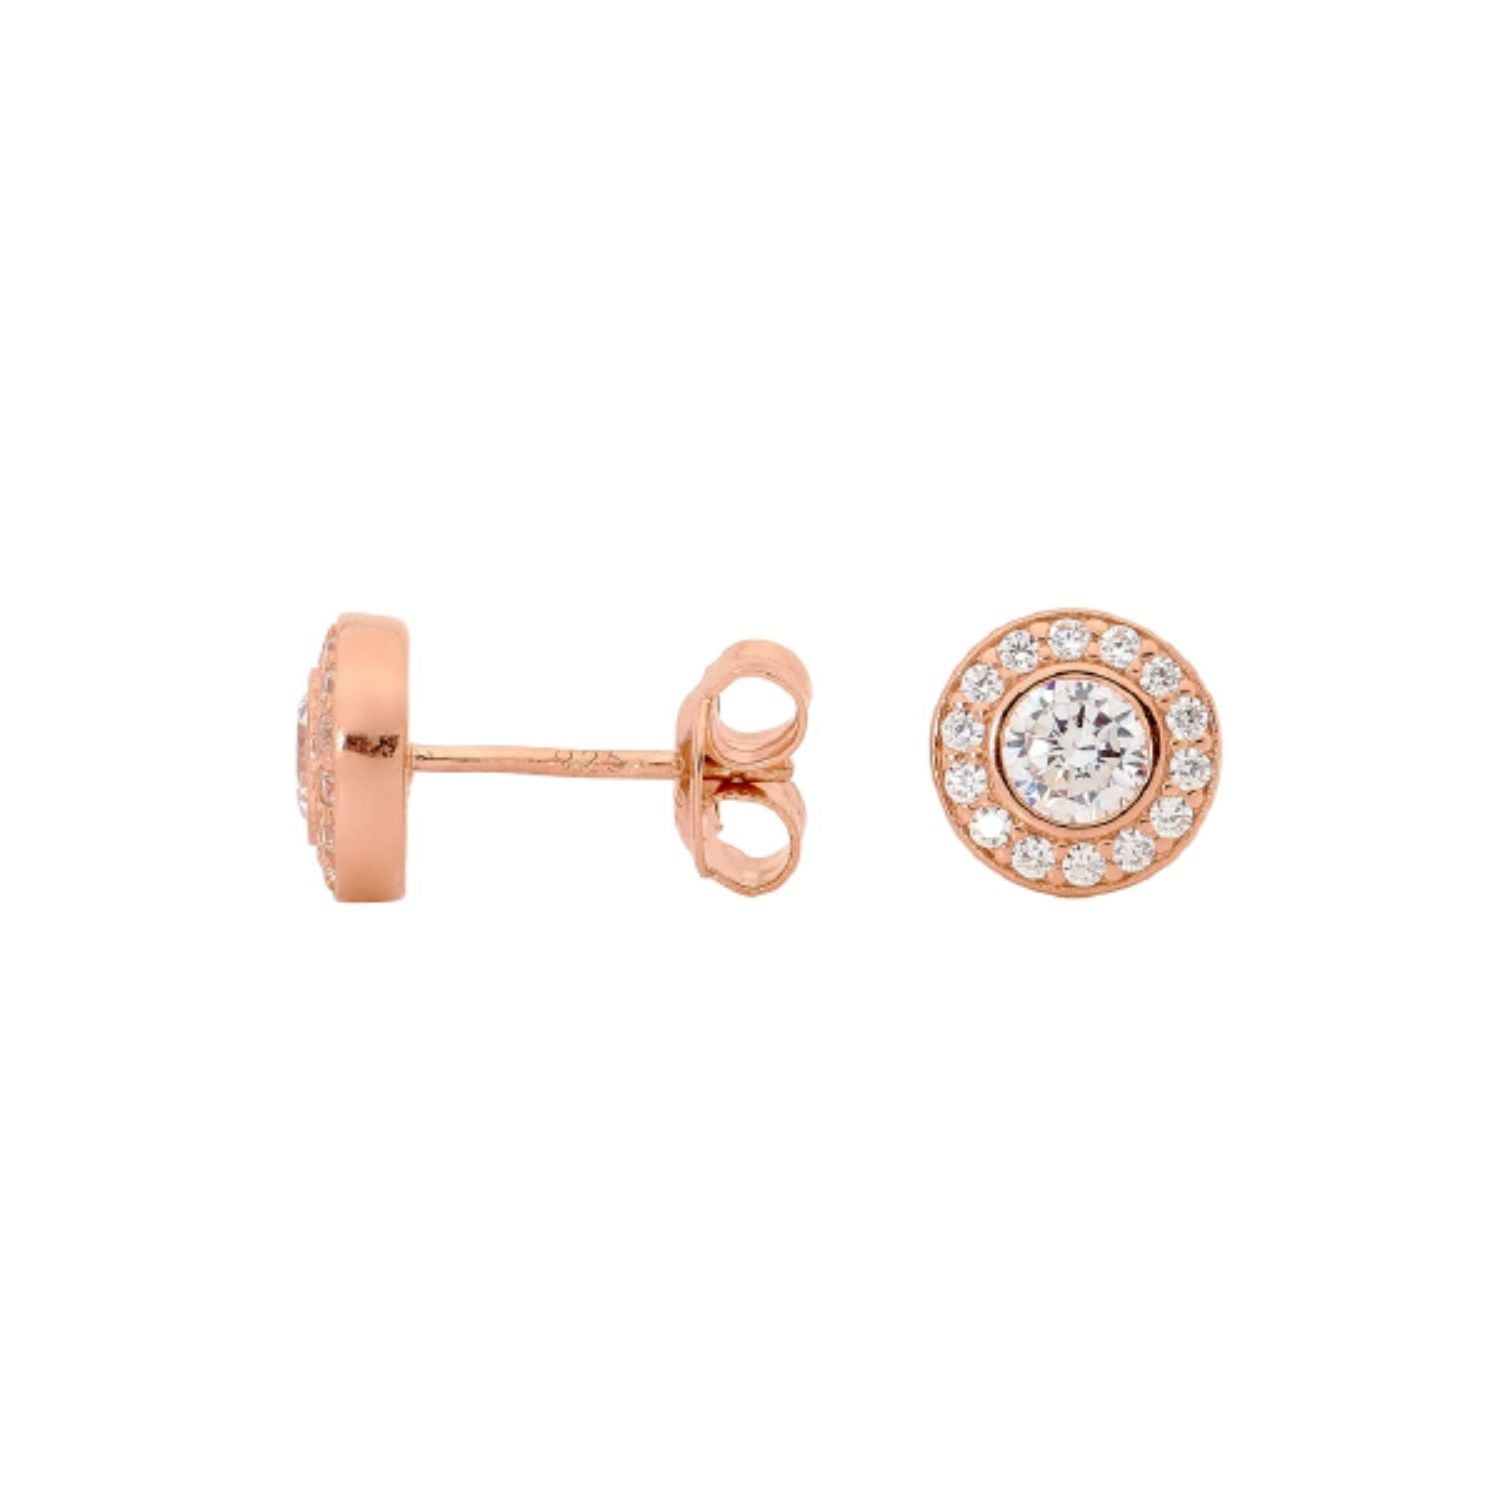 Georgini - Rose Gold Plated Sterling Silver Cubic Zirconia Stud Earrings